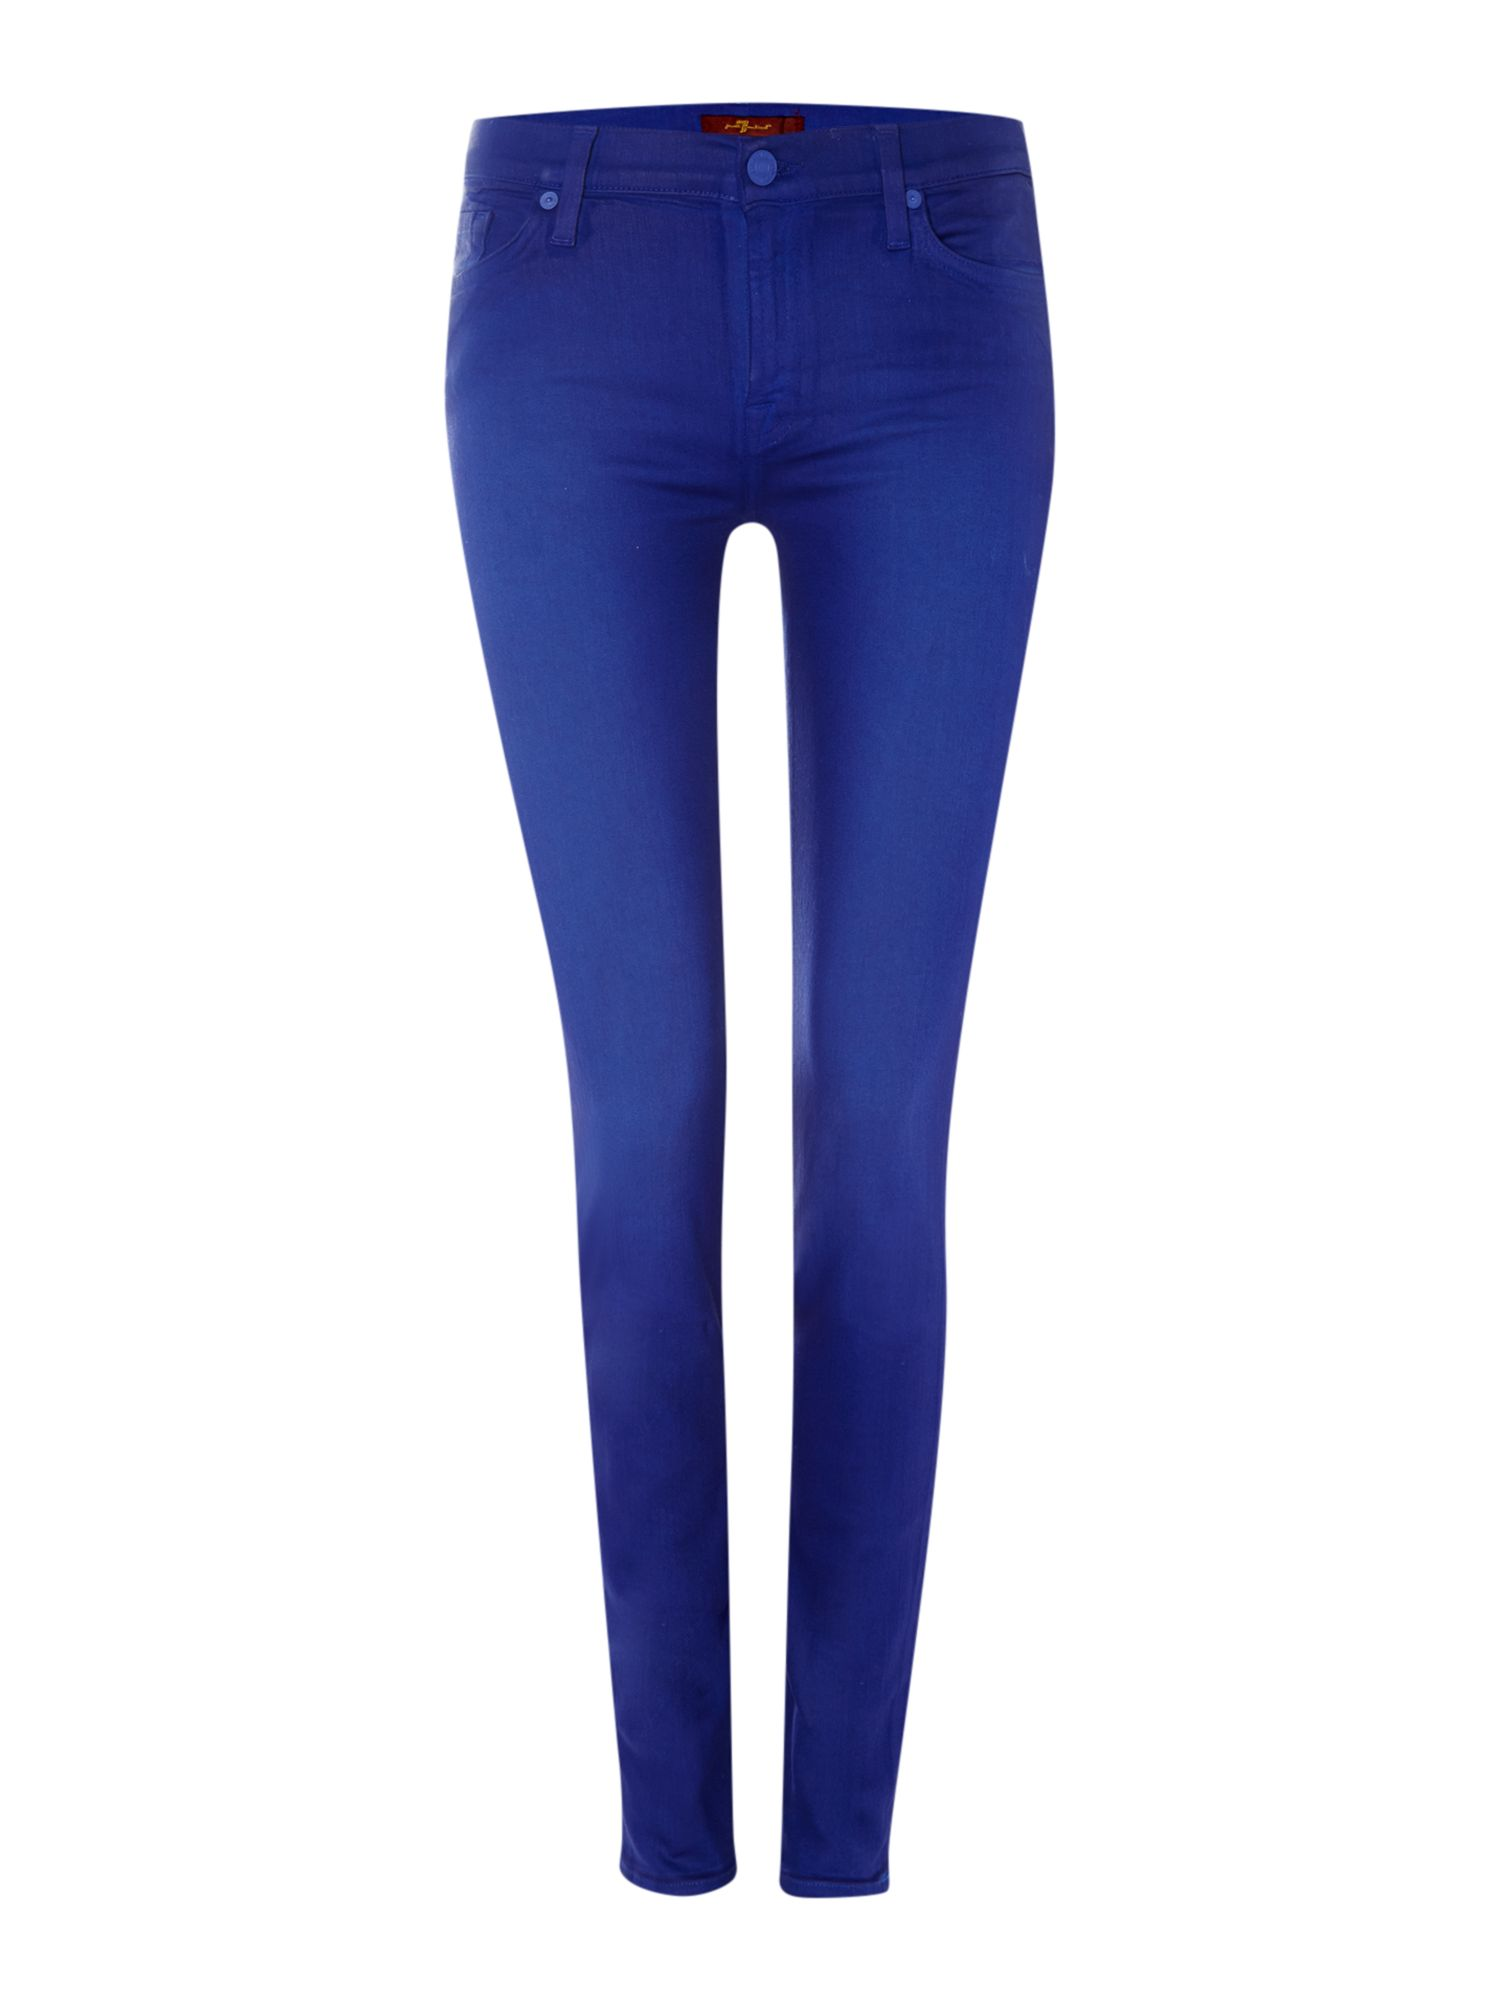 The Skinny coated jeans in Royal Blue